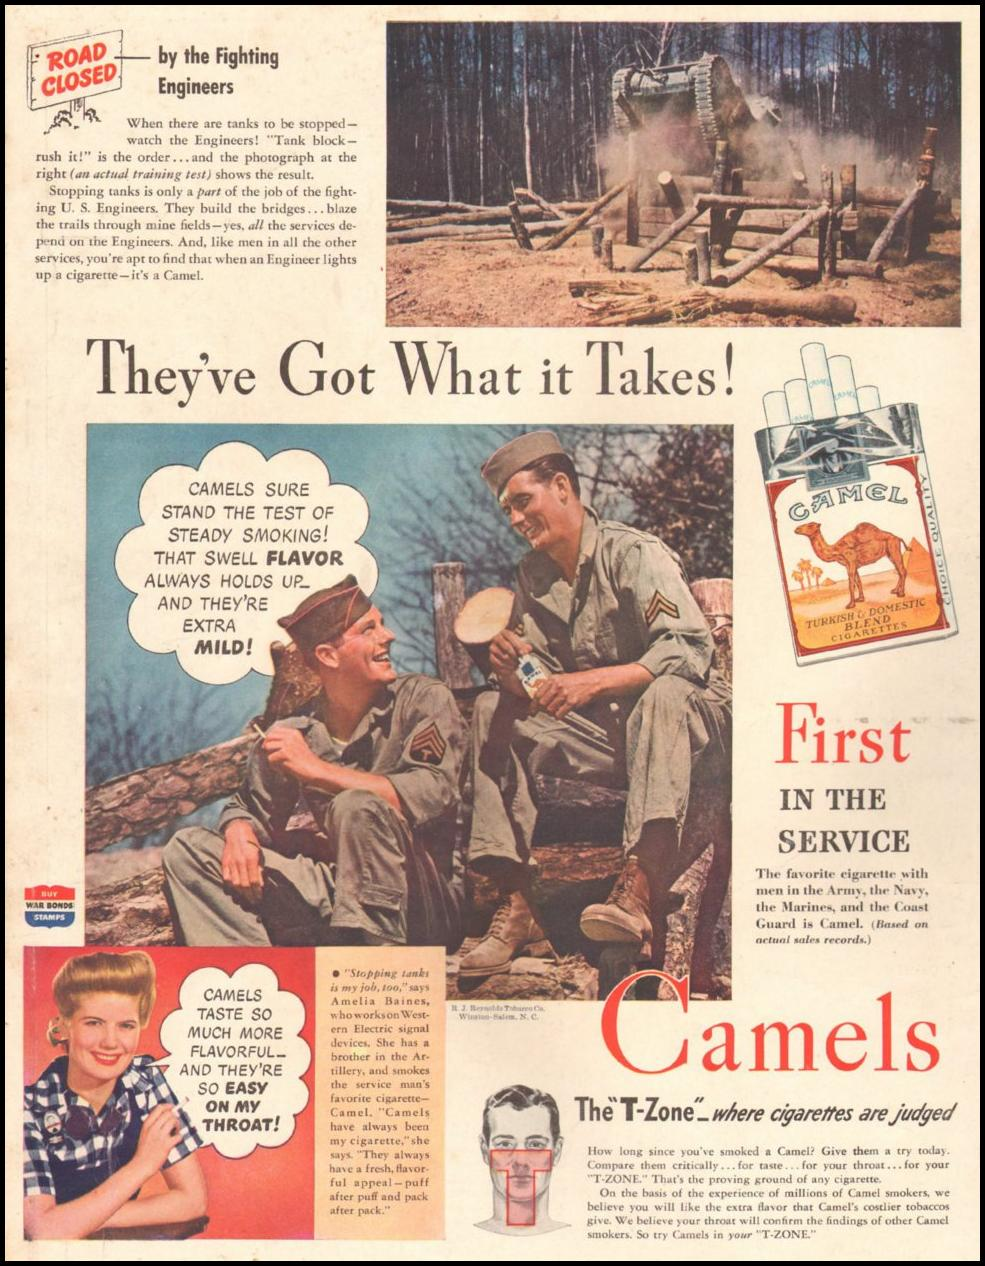 CAMEL CIGARETTES LIFE 10/25/1943 BACK COVER